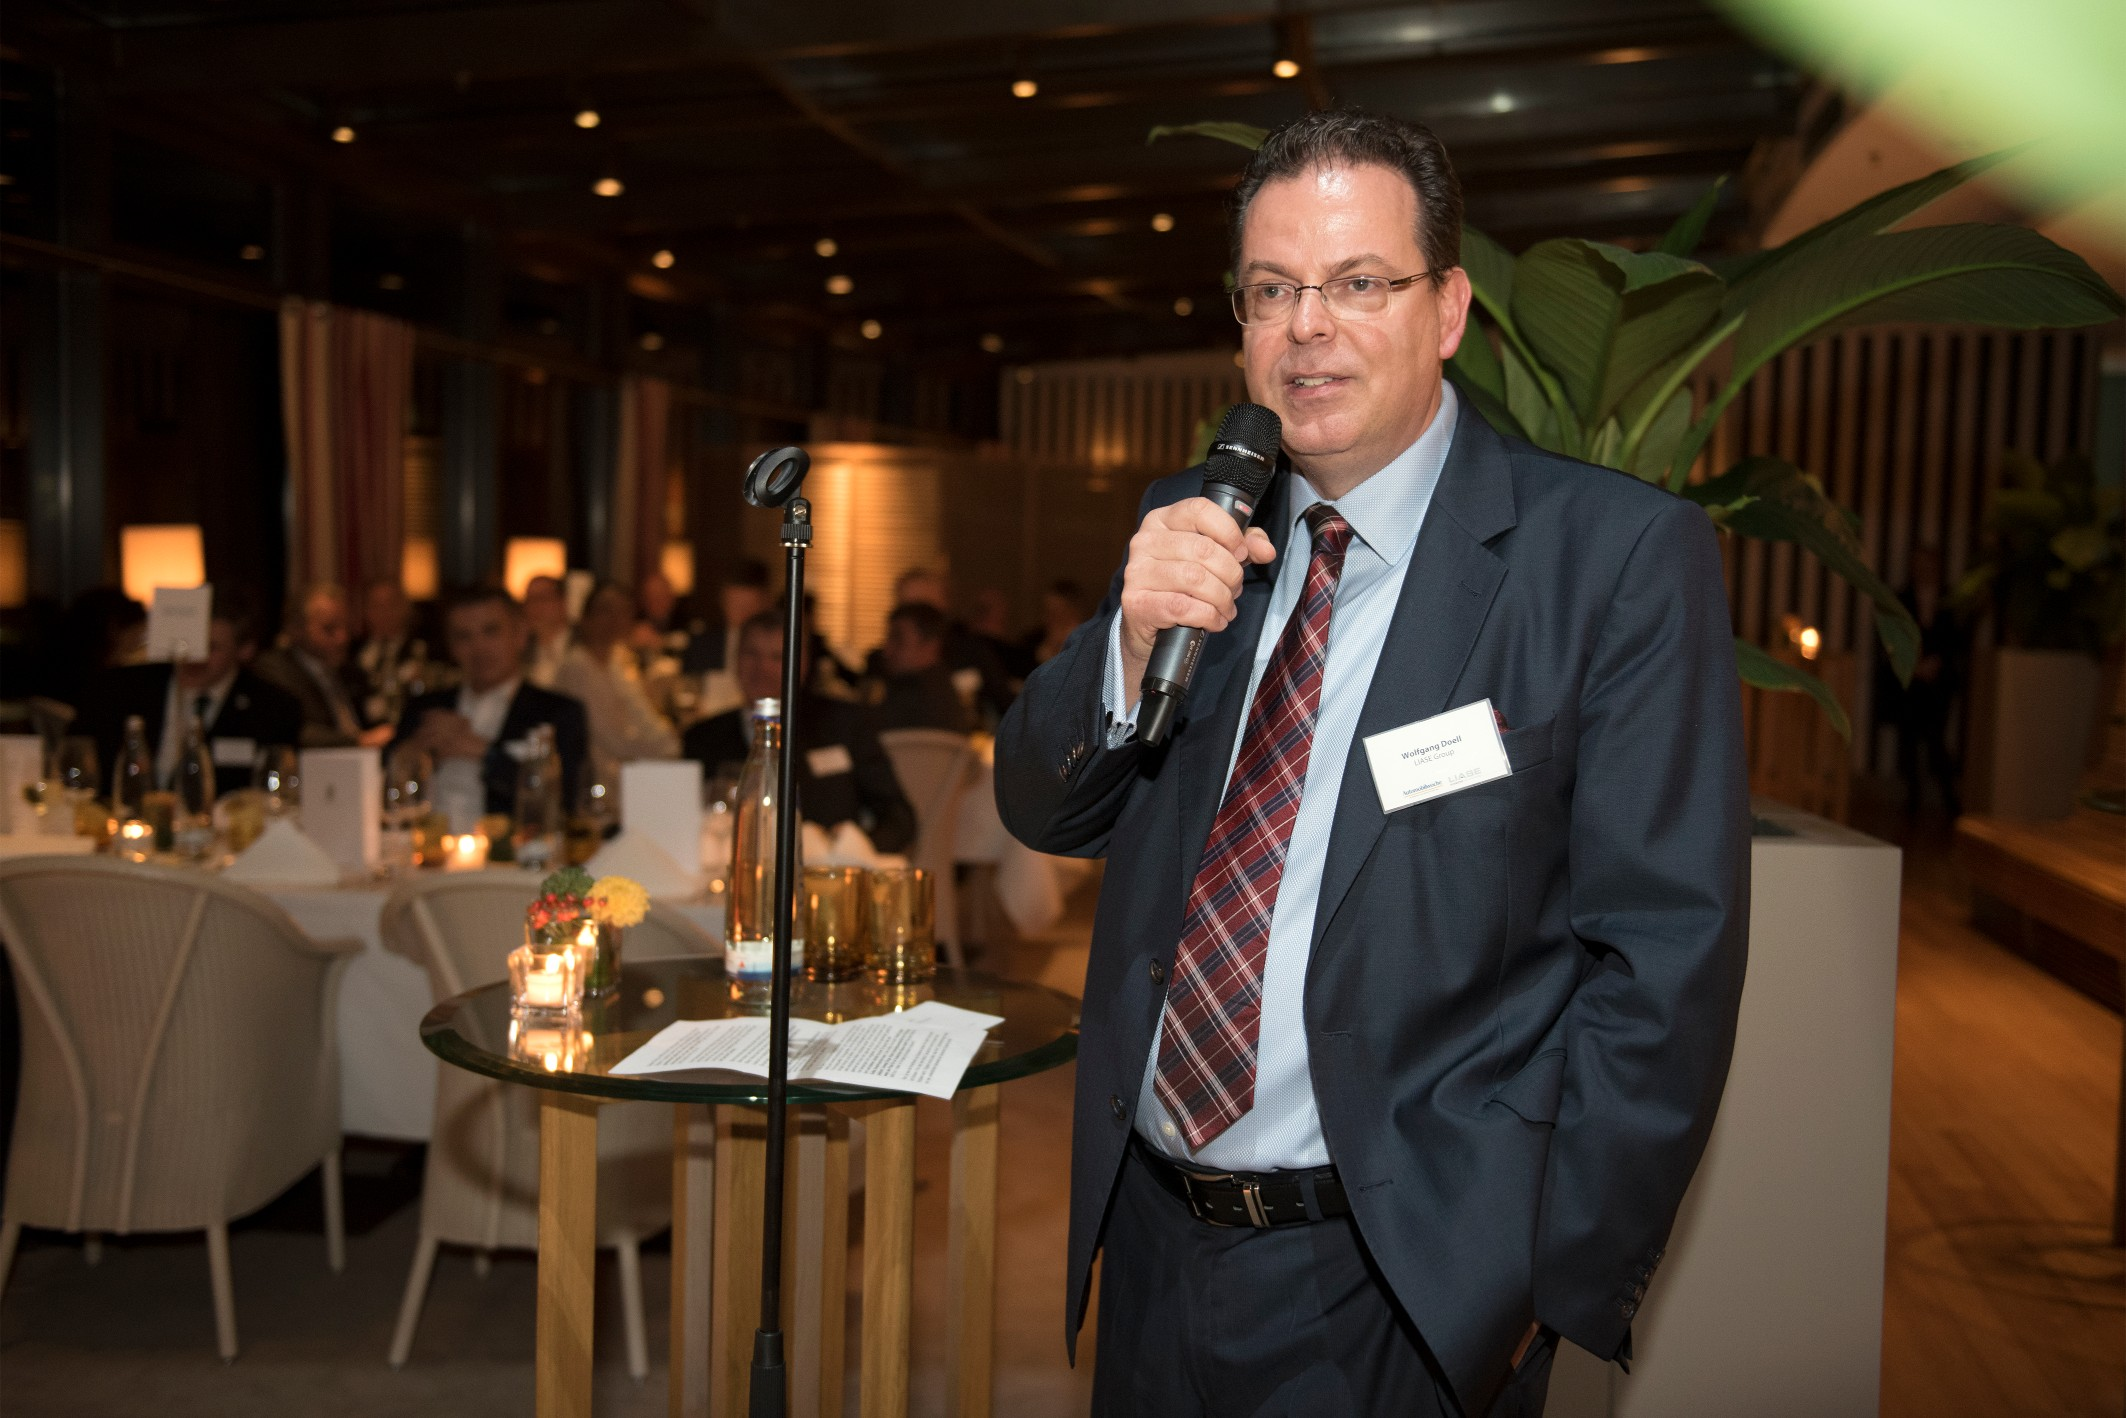 Wolfgang Doell, President and Managing Director Europe, LIASE Group, addressing the audience at the dinner.